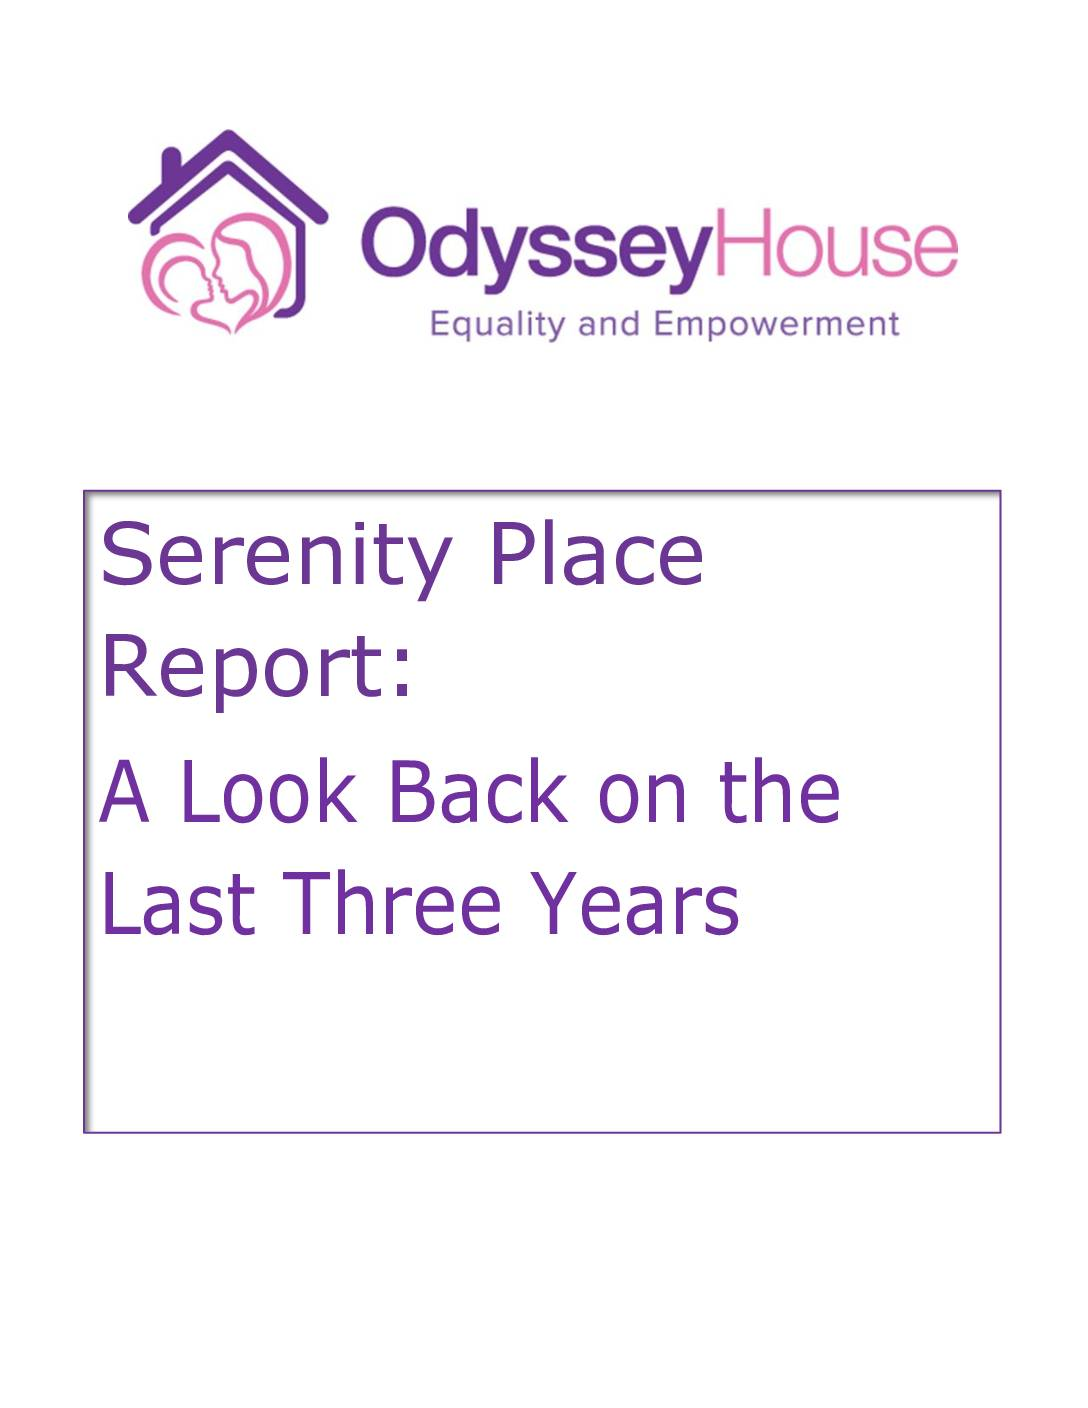 Serenity Place 3-Year Report